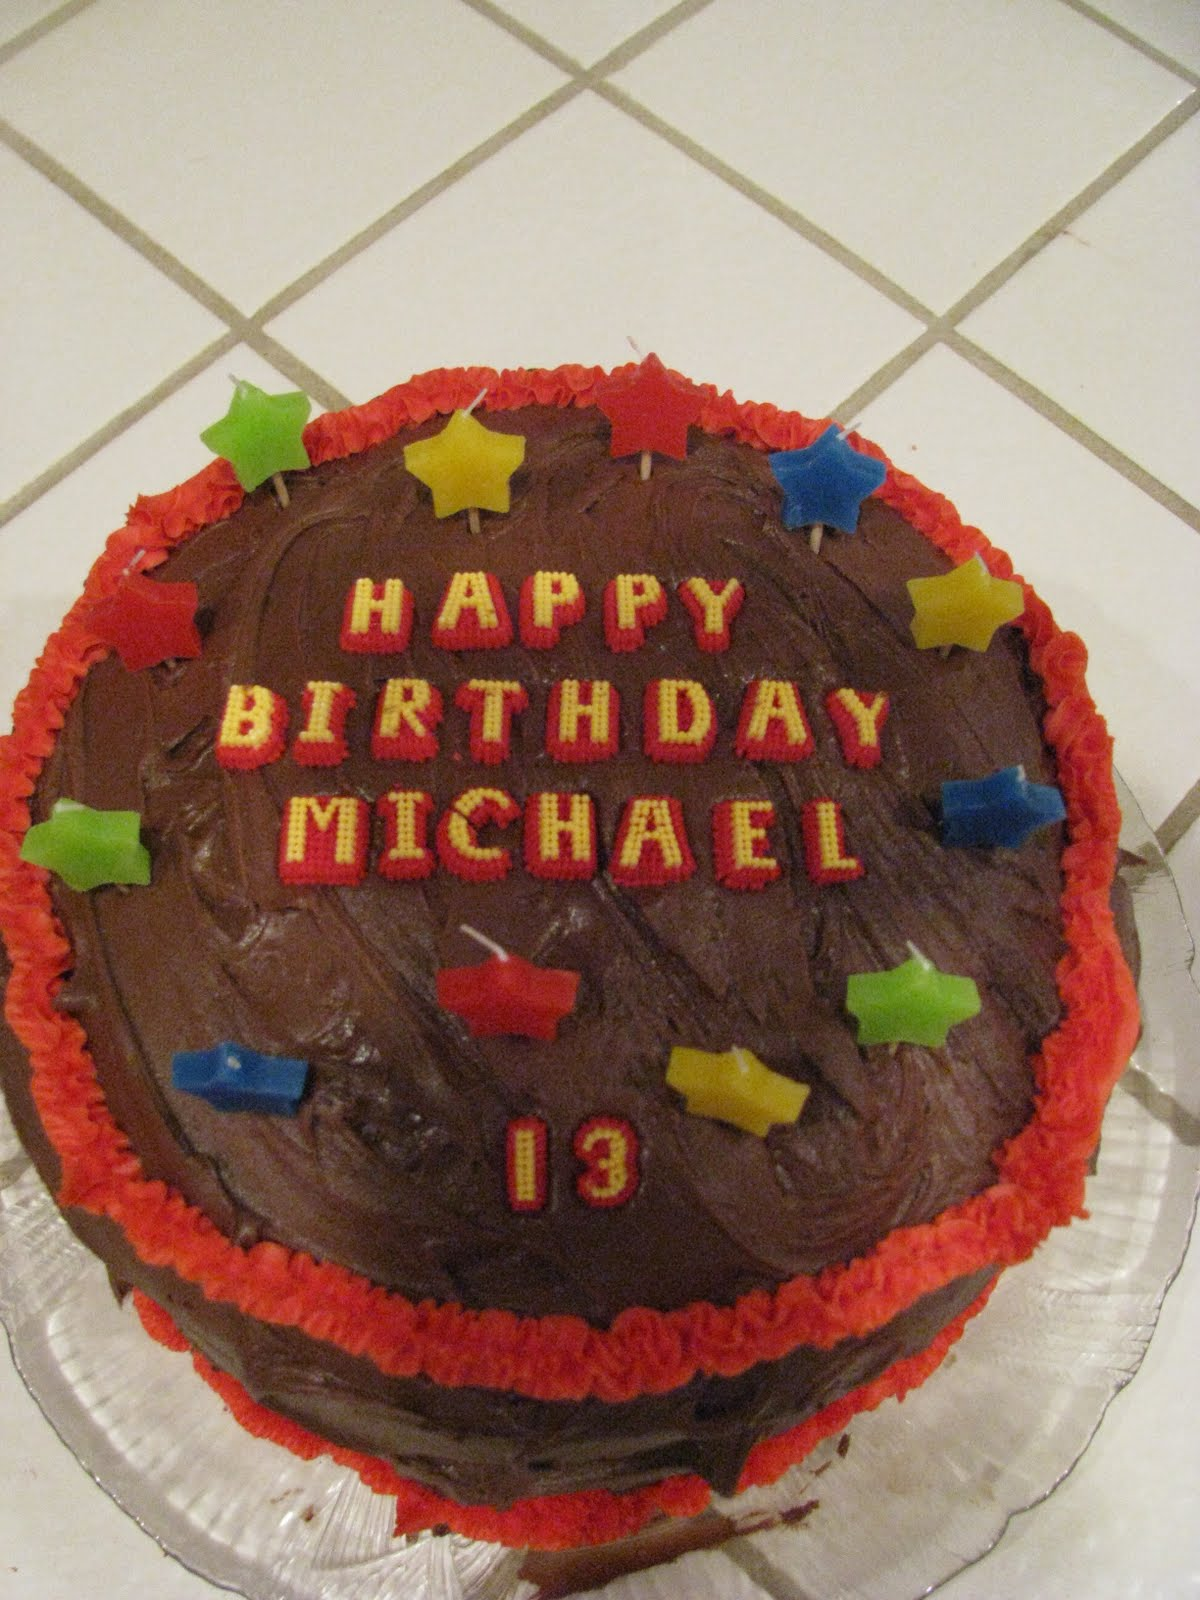 Birthday Cake Images Michael : Family of Four: Happy Birthday Michael!